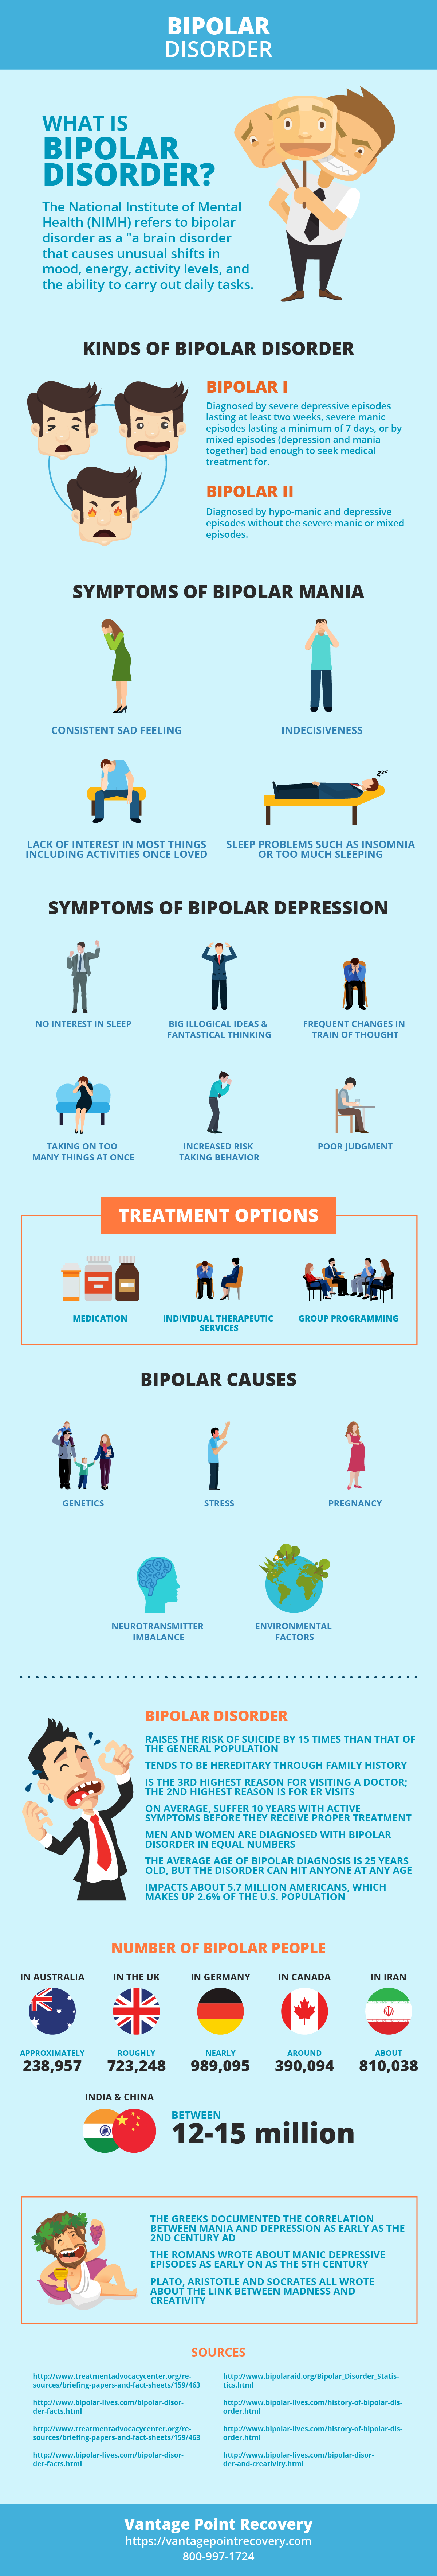 Bipolar Disorder Infographic by Vantage Point Recovery